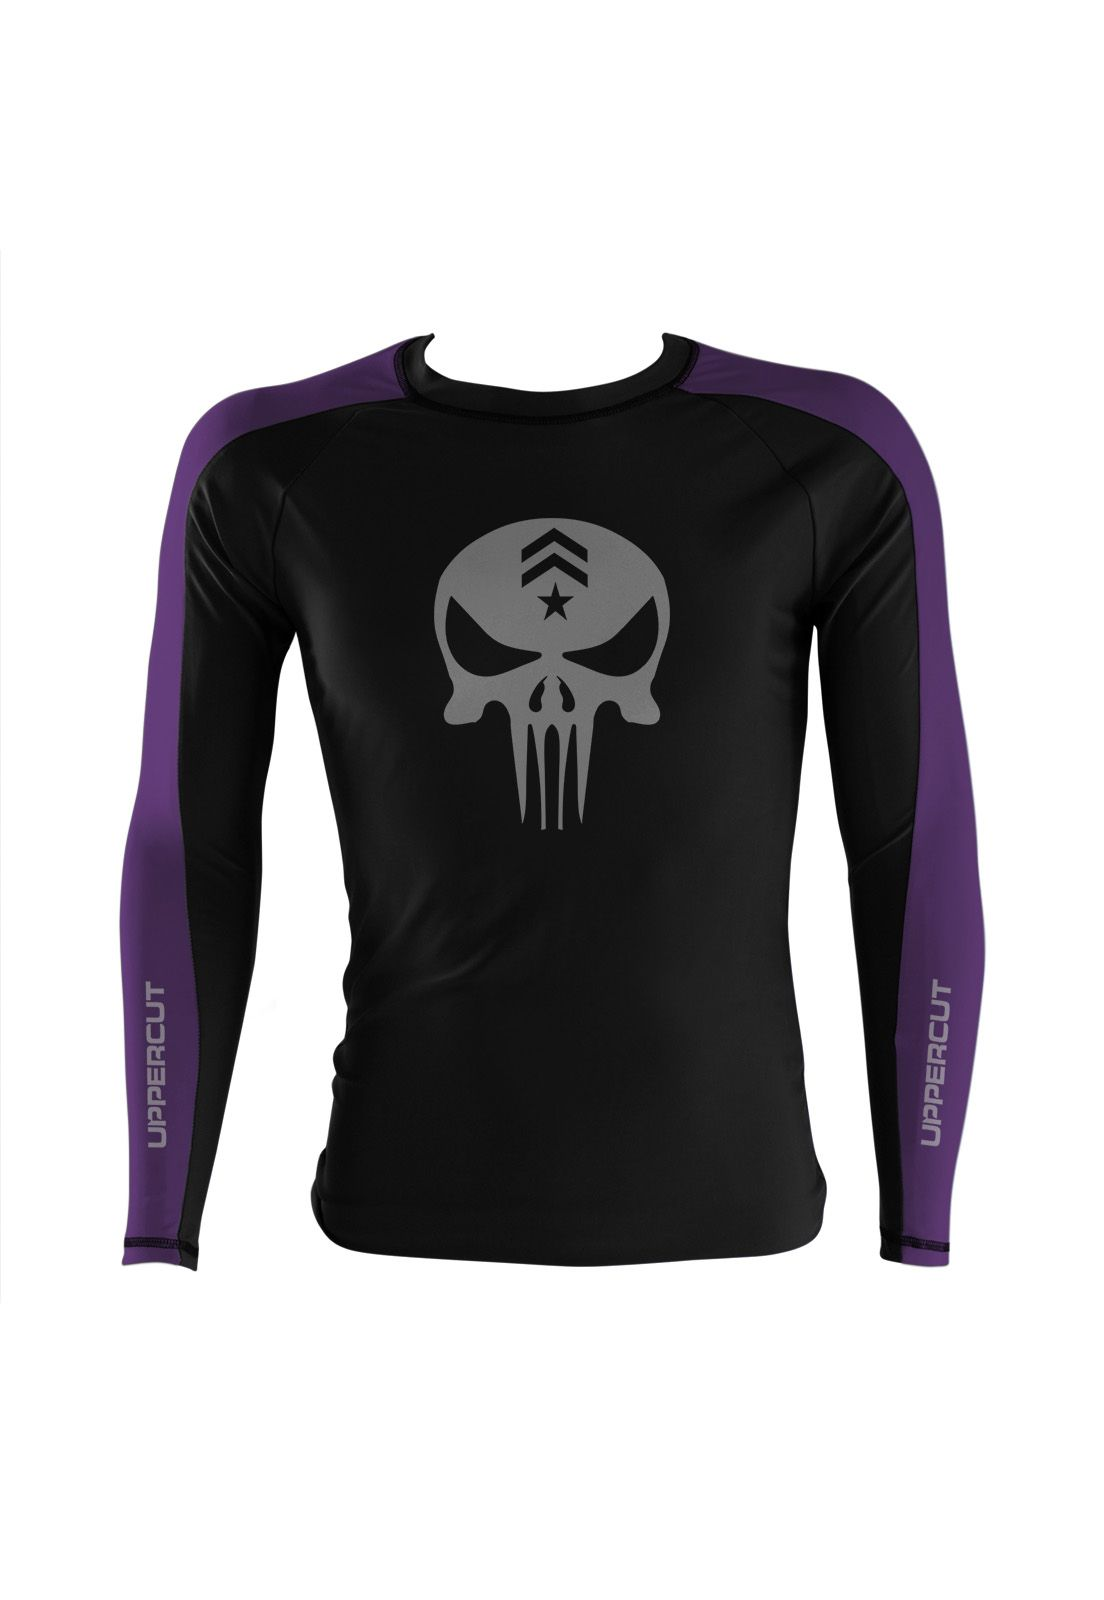 Camisa Rash Guard Justiceiro War R-3 - Preto/Roxa - Uppercut